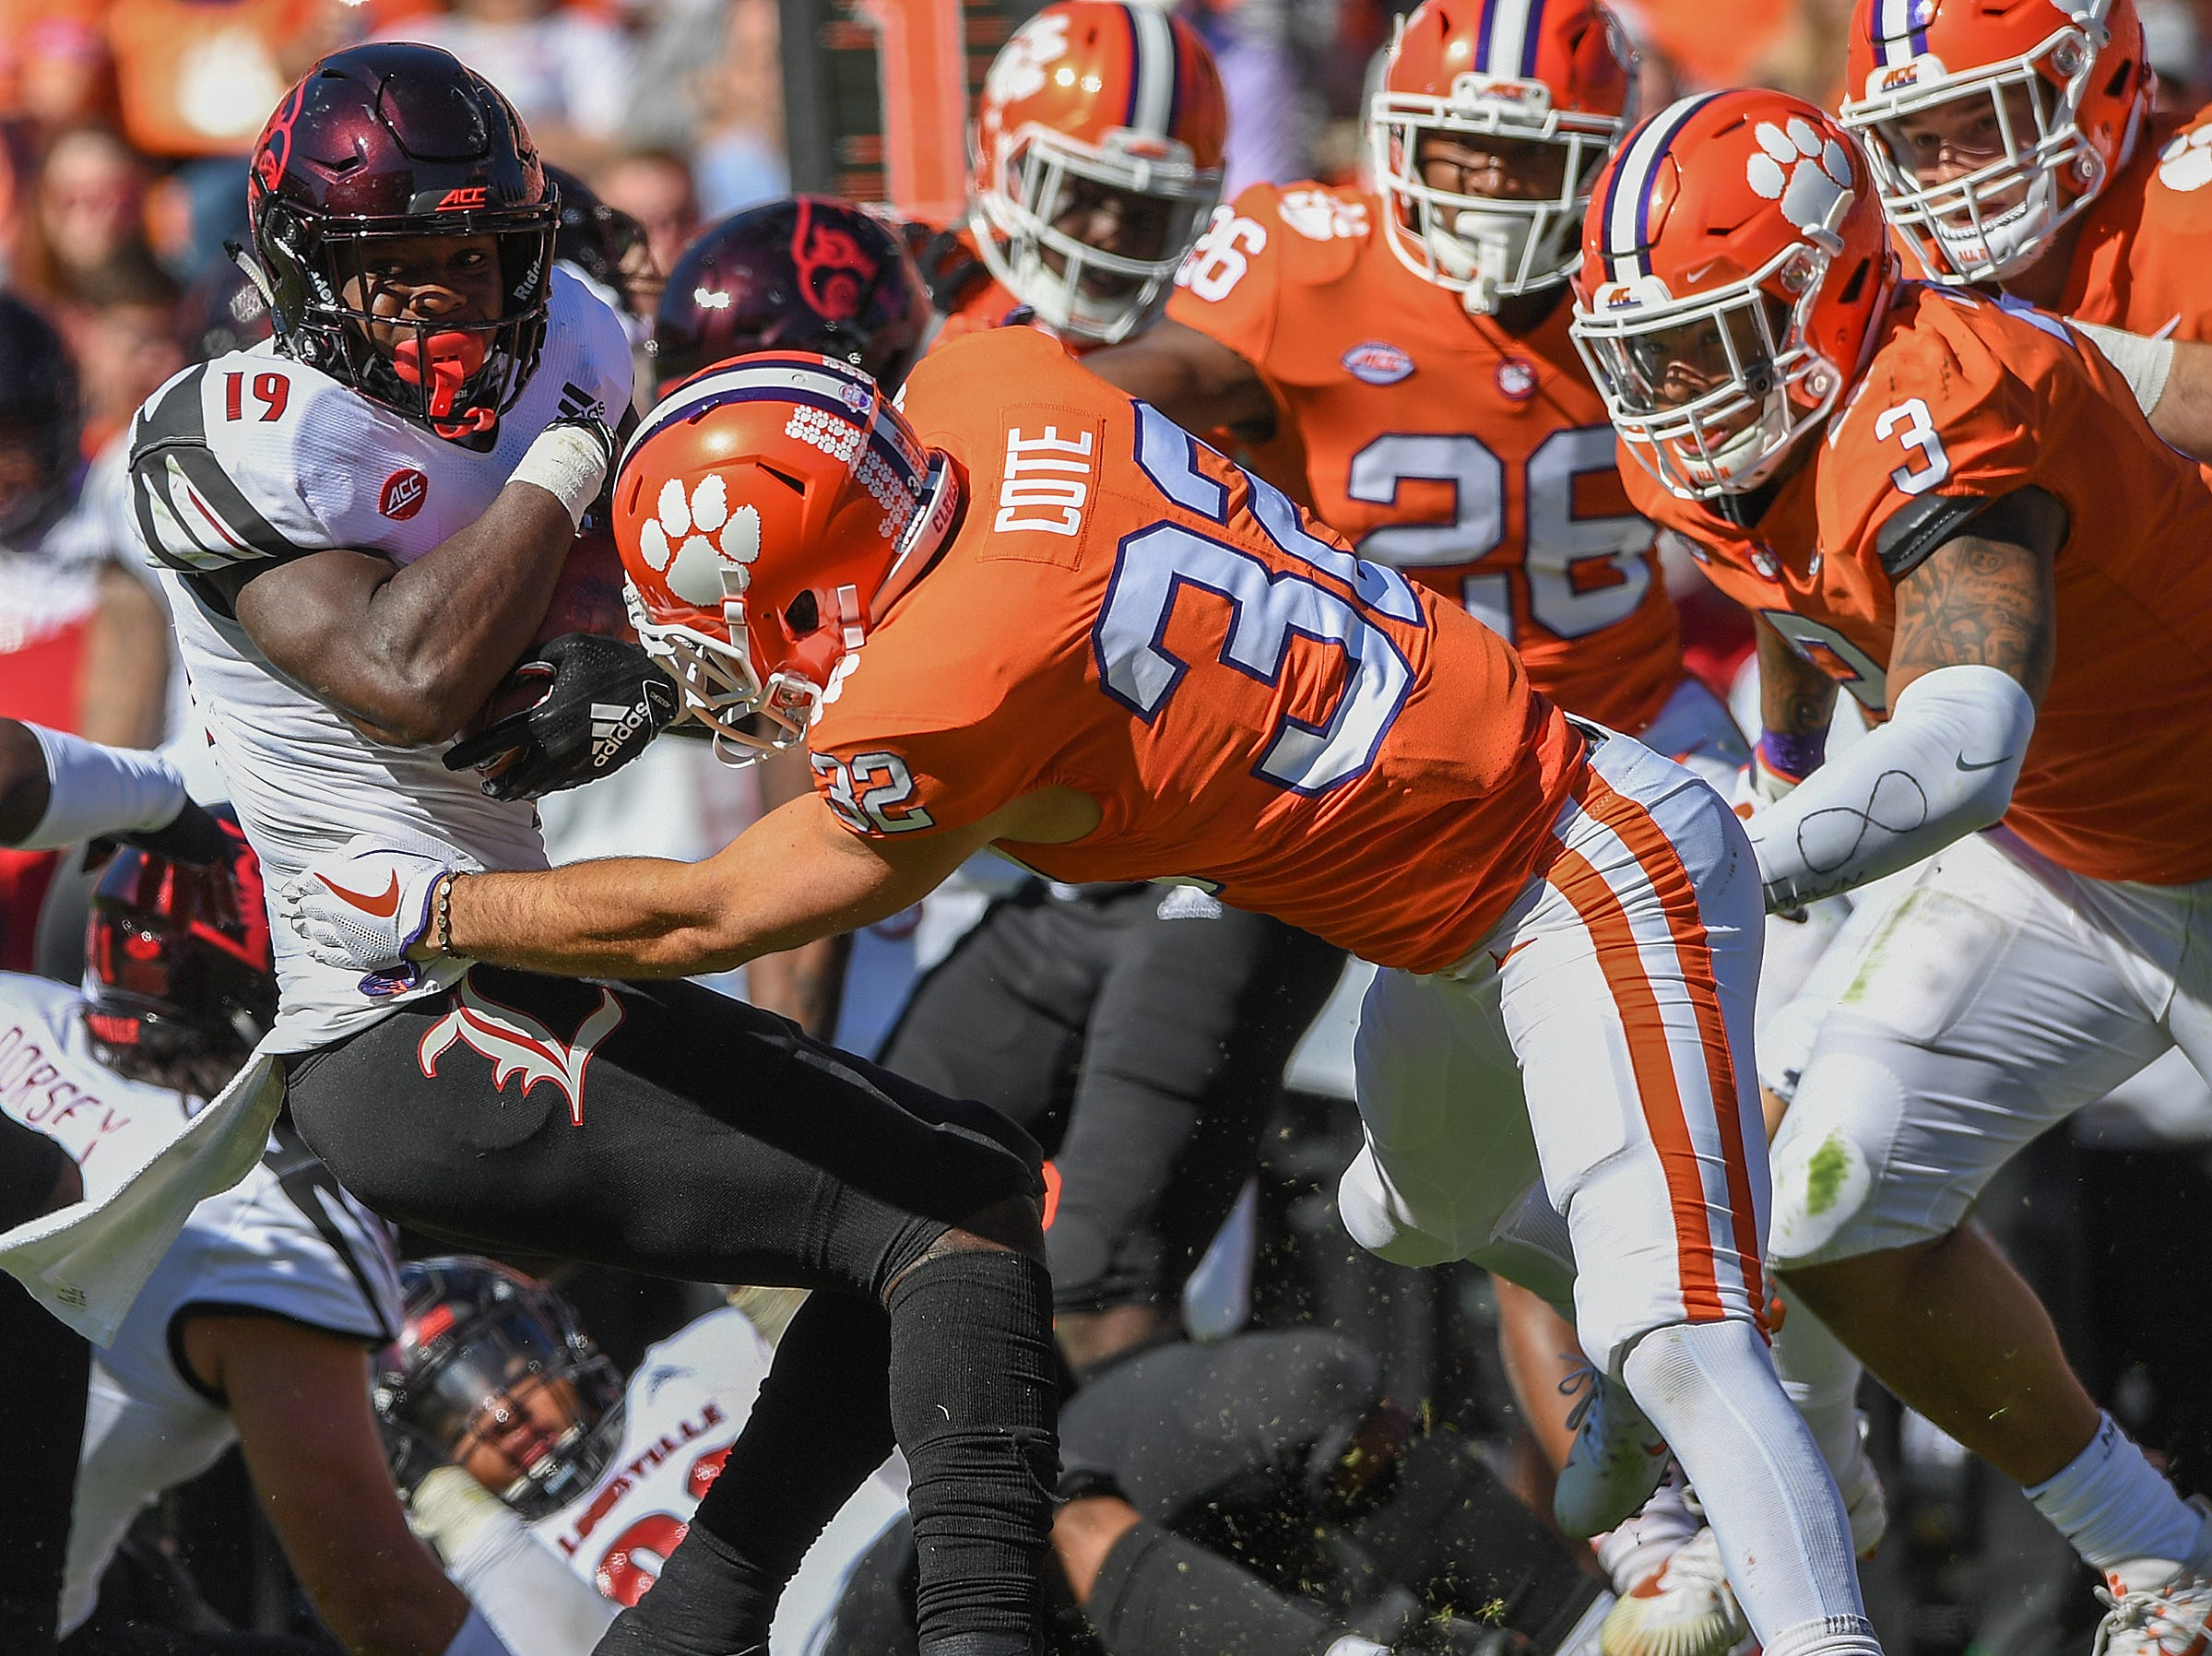 Clemson safety Kyle Cote (32) brings down Louisville running back Hassan Hall (19) during the 3rd quarter Saturday, November 3, 2018 at Clemson's Memorial Stadium.